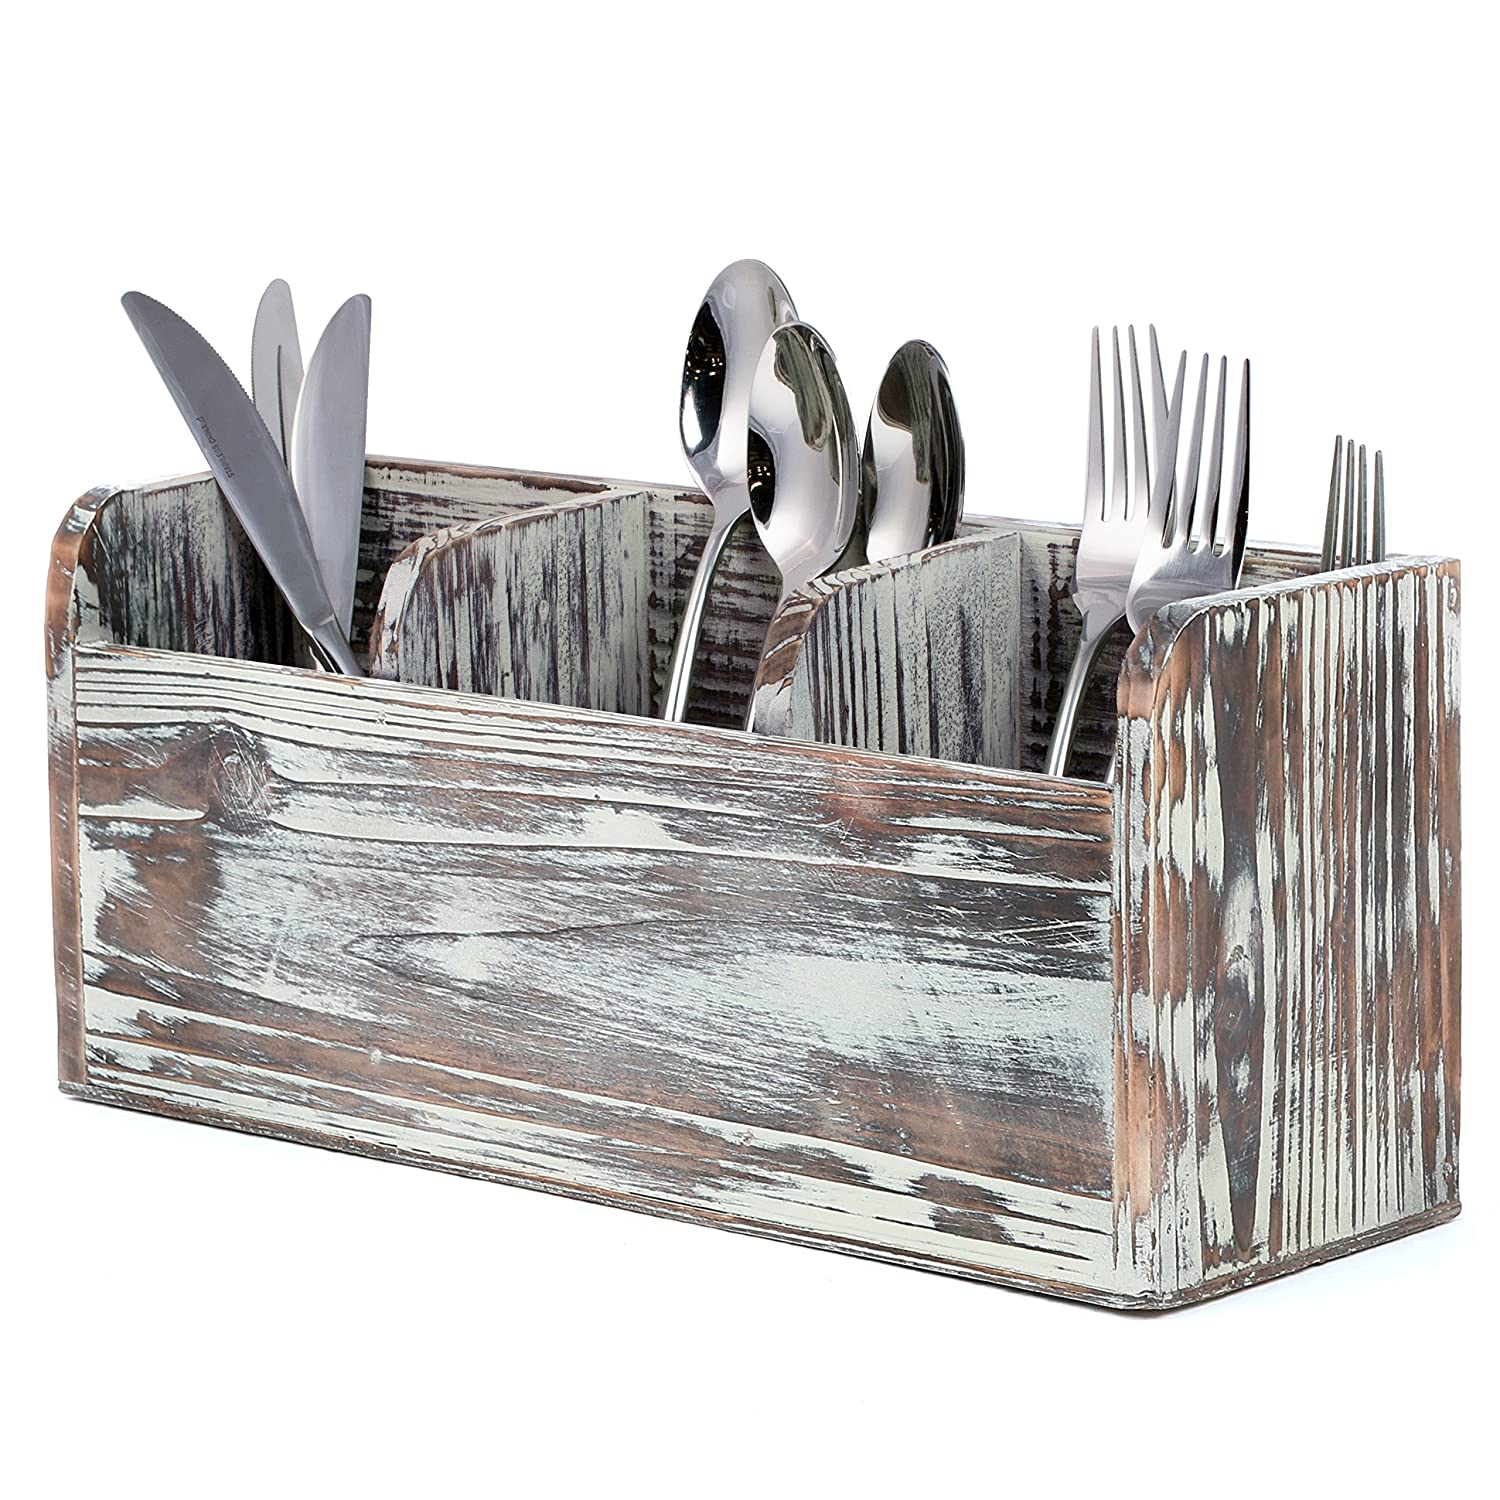 3 Compartment Rustic Torched Wood Utensil Holder, Flatware Caddy and Organizer Tray MyGift